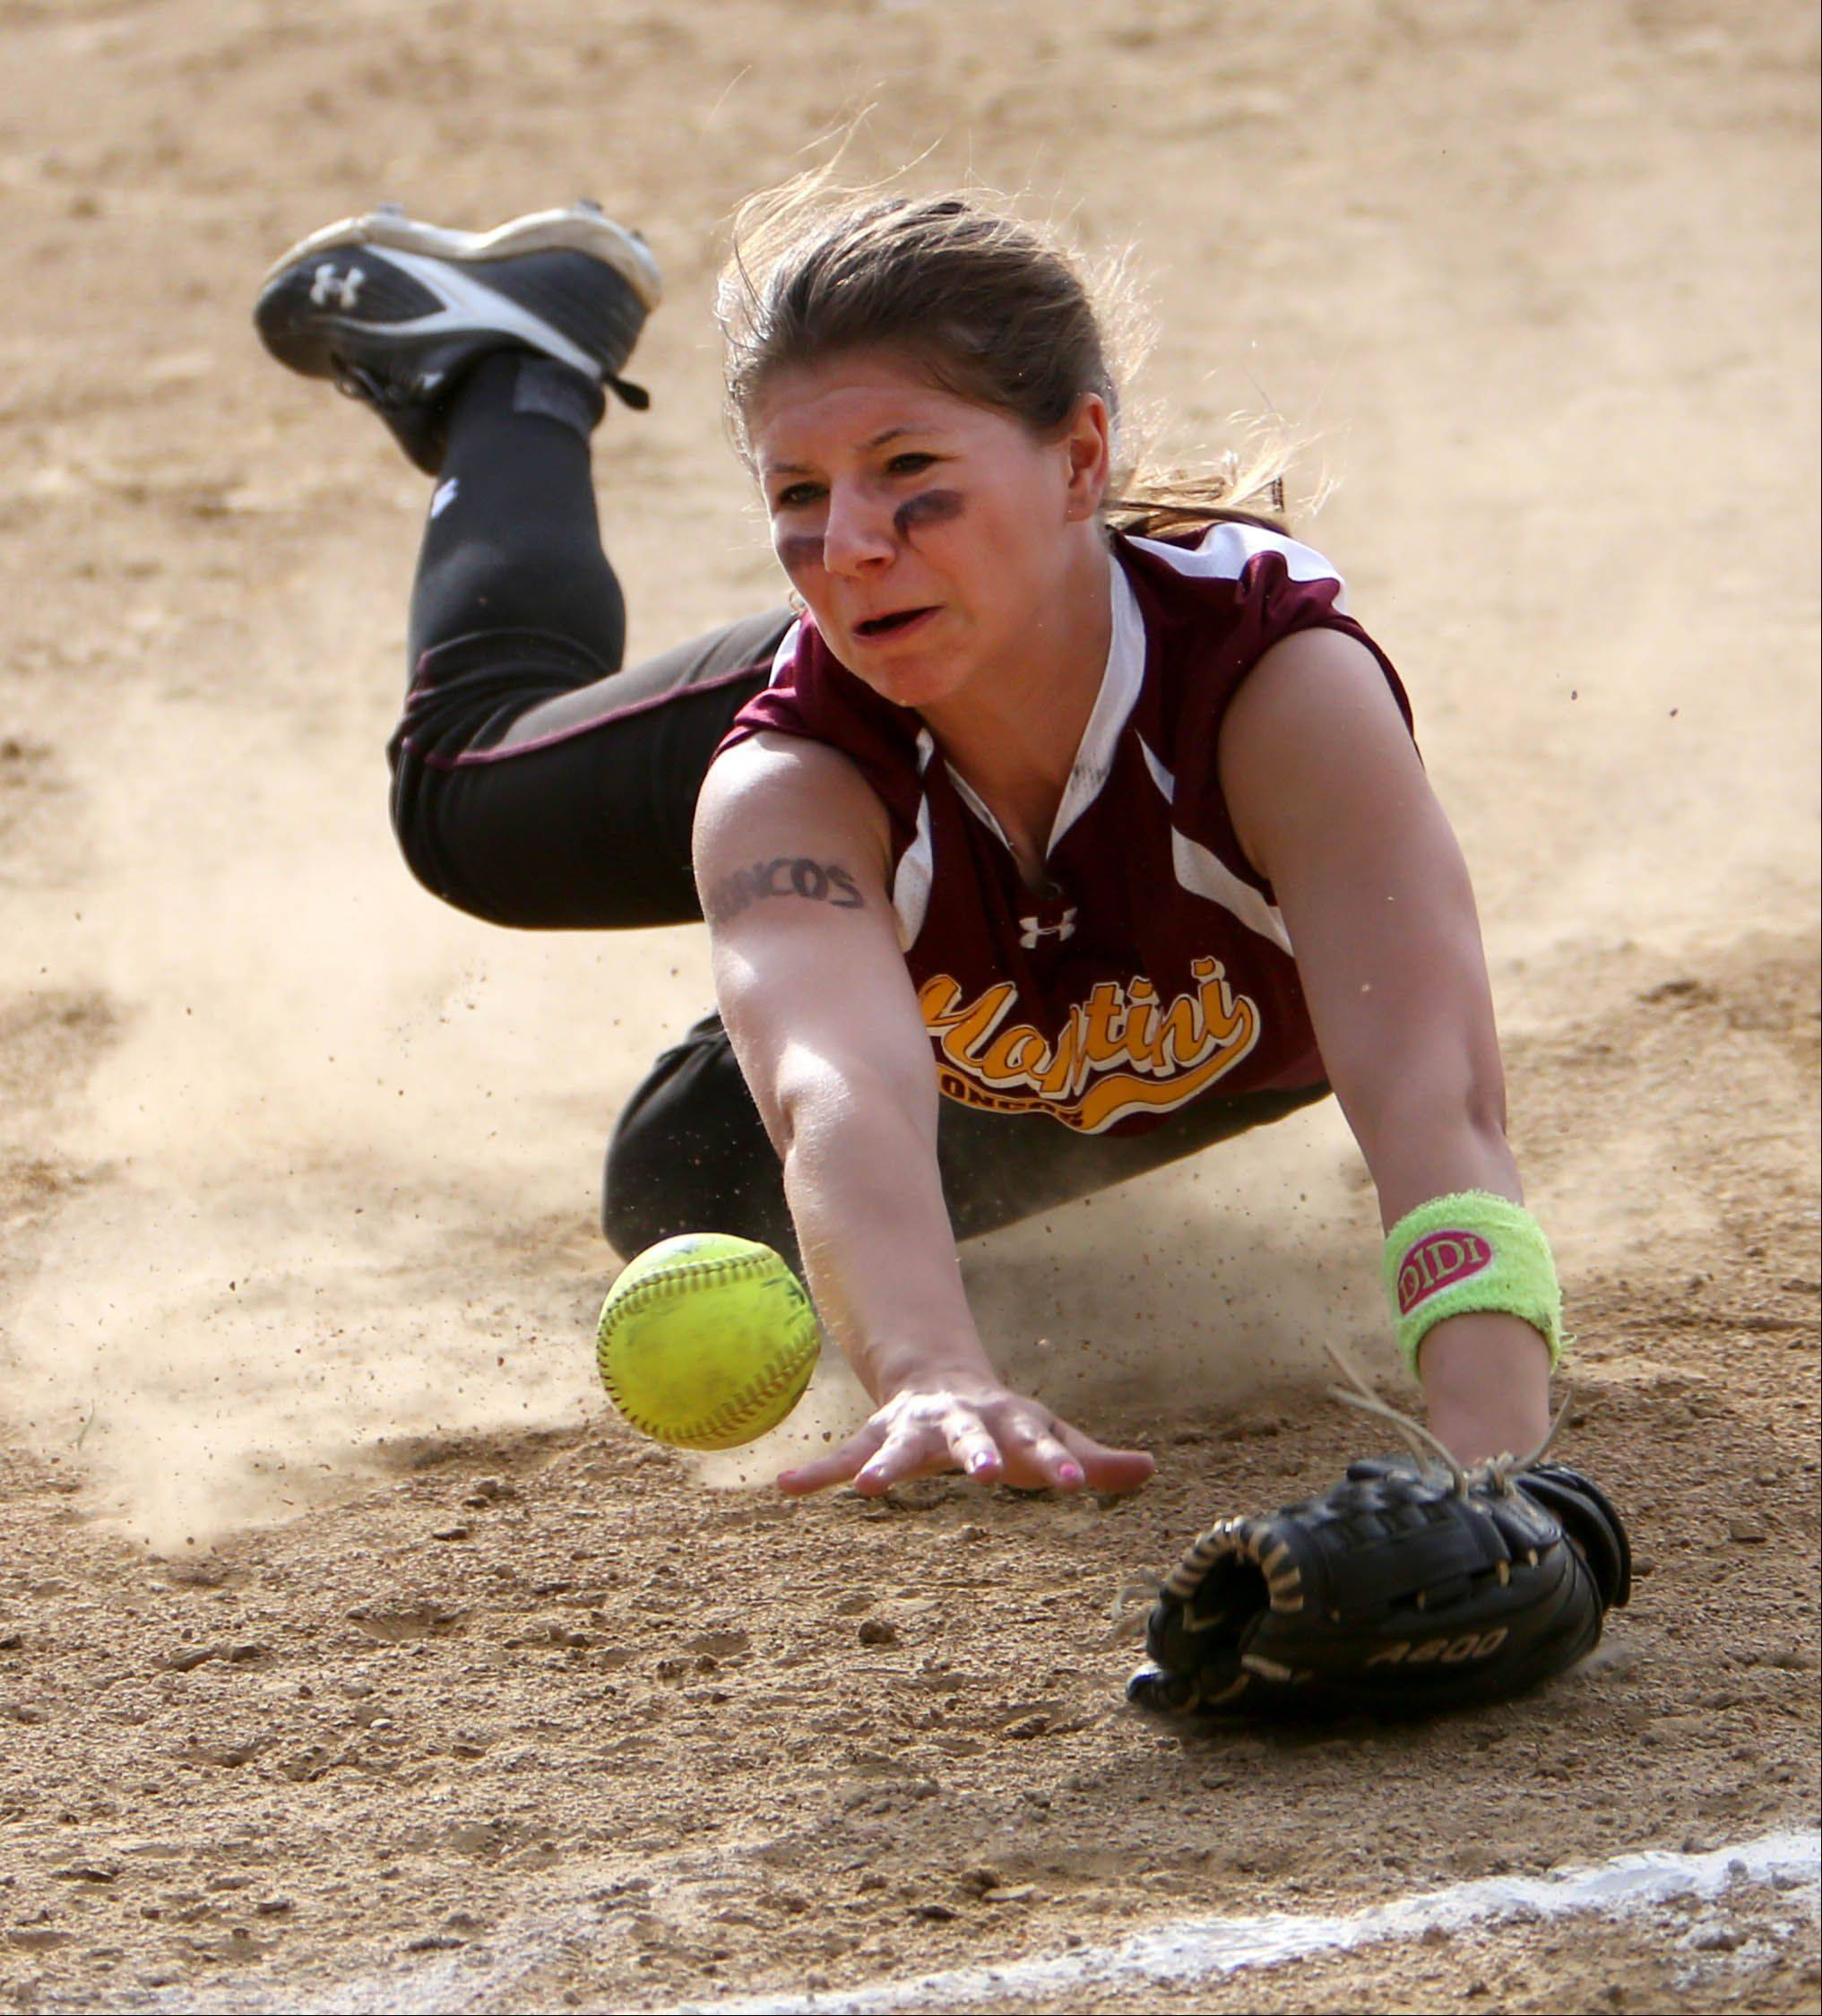 Montini Catholic pitcher Lauren Trojnar dives for a ball in the infield during girls softball against St. Francis on Monday in Wheaton.